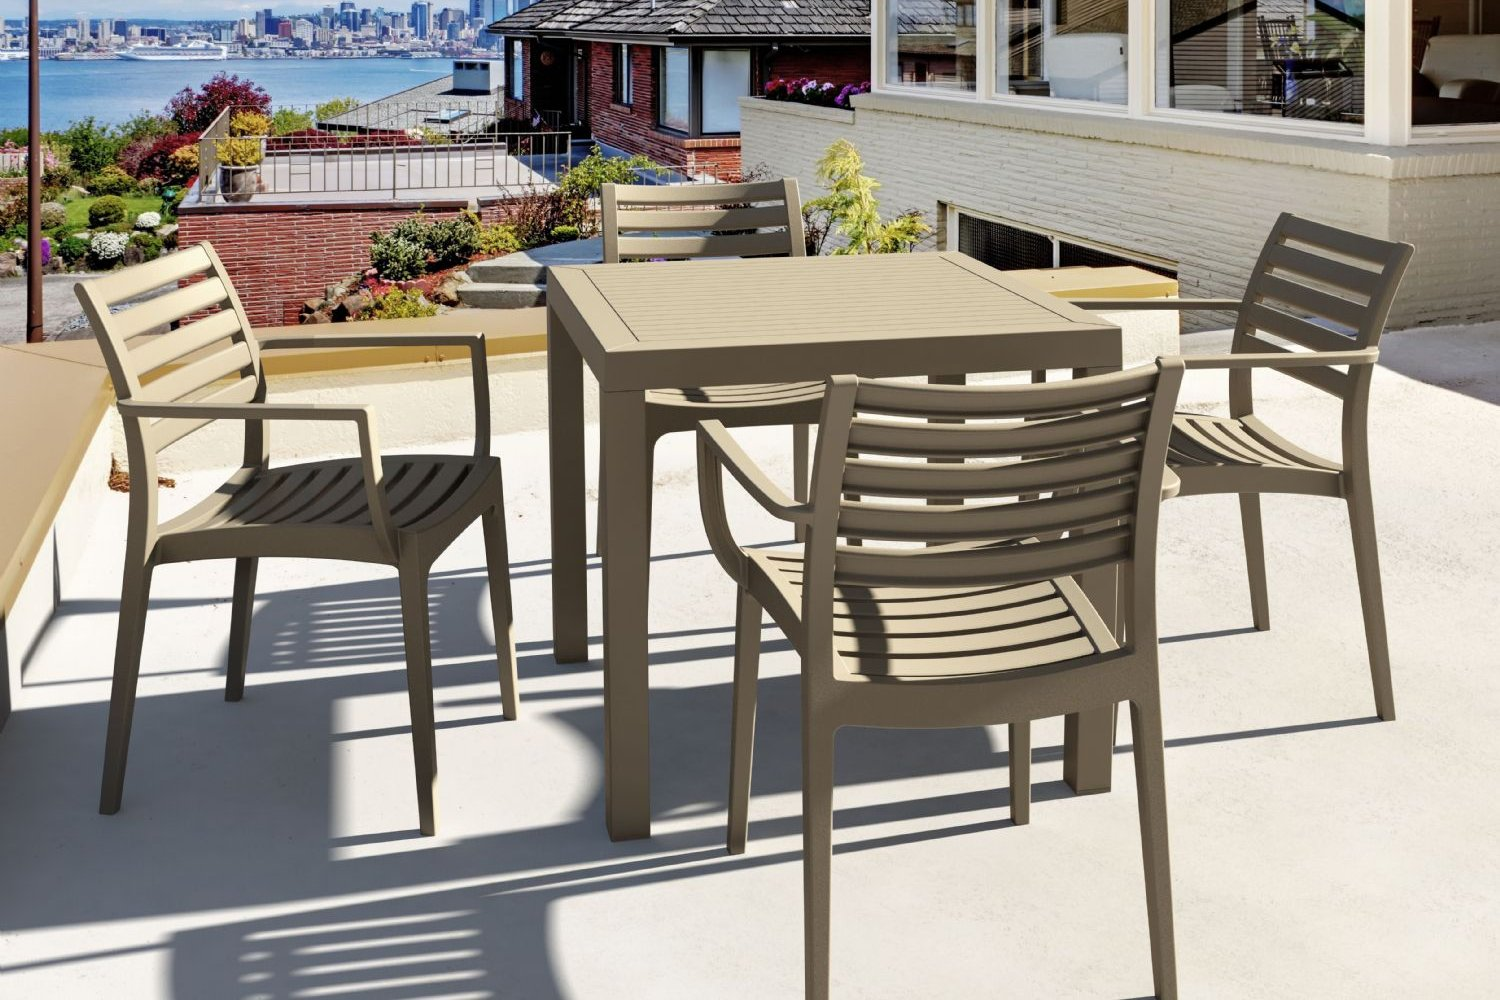 Artemis Resin Square Outdoor Dining Set 5 Piece with Arm Chairs ISP1642S - 3